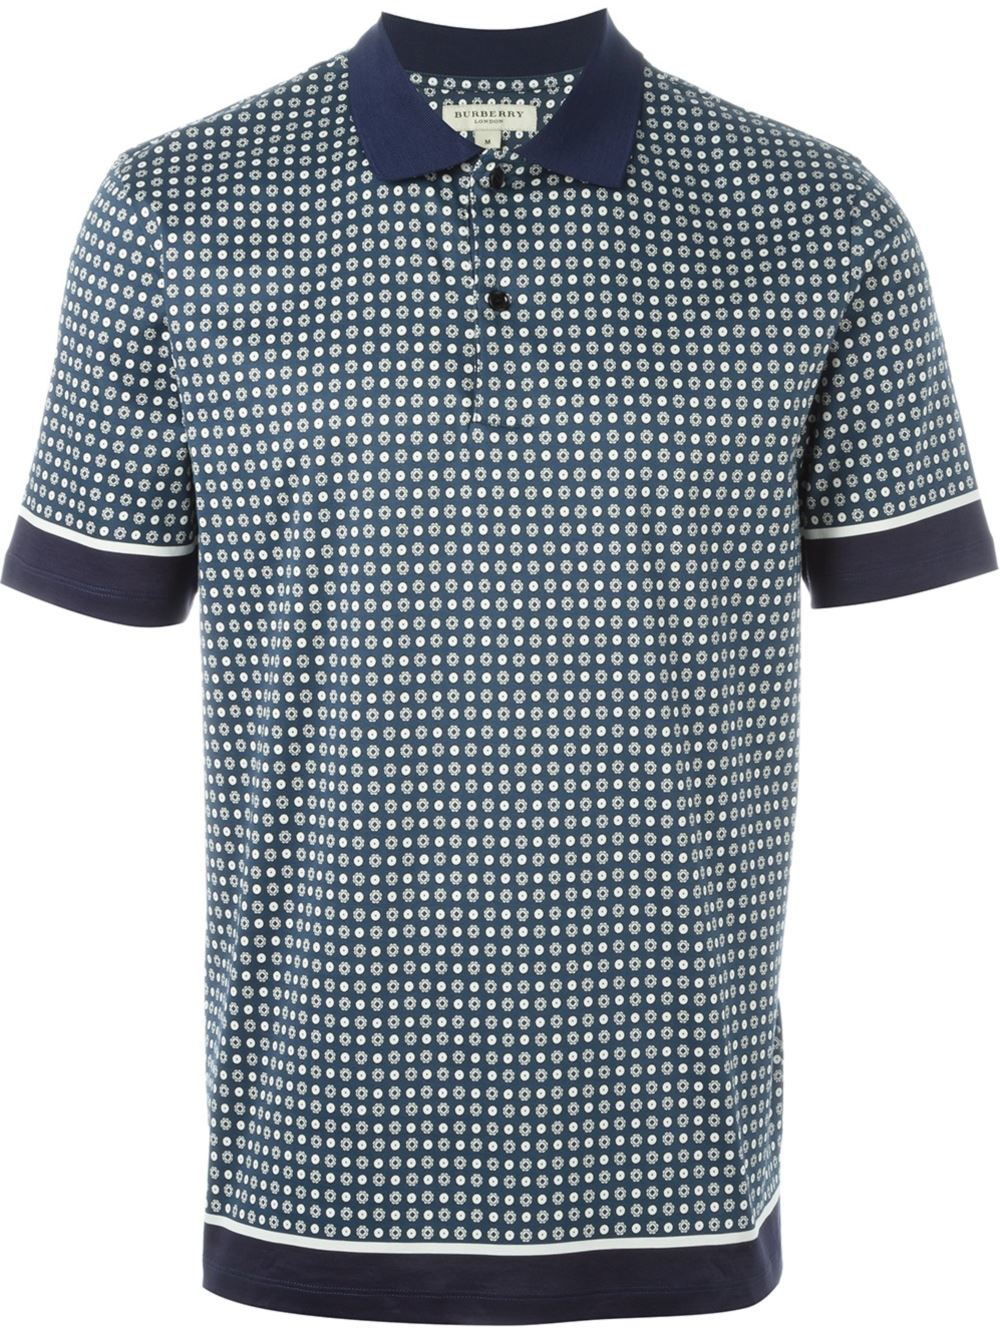 Burberry Cotton Printed Polo Shirt In Blue For Men Lyst